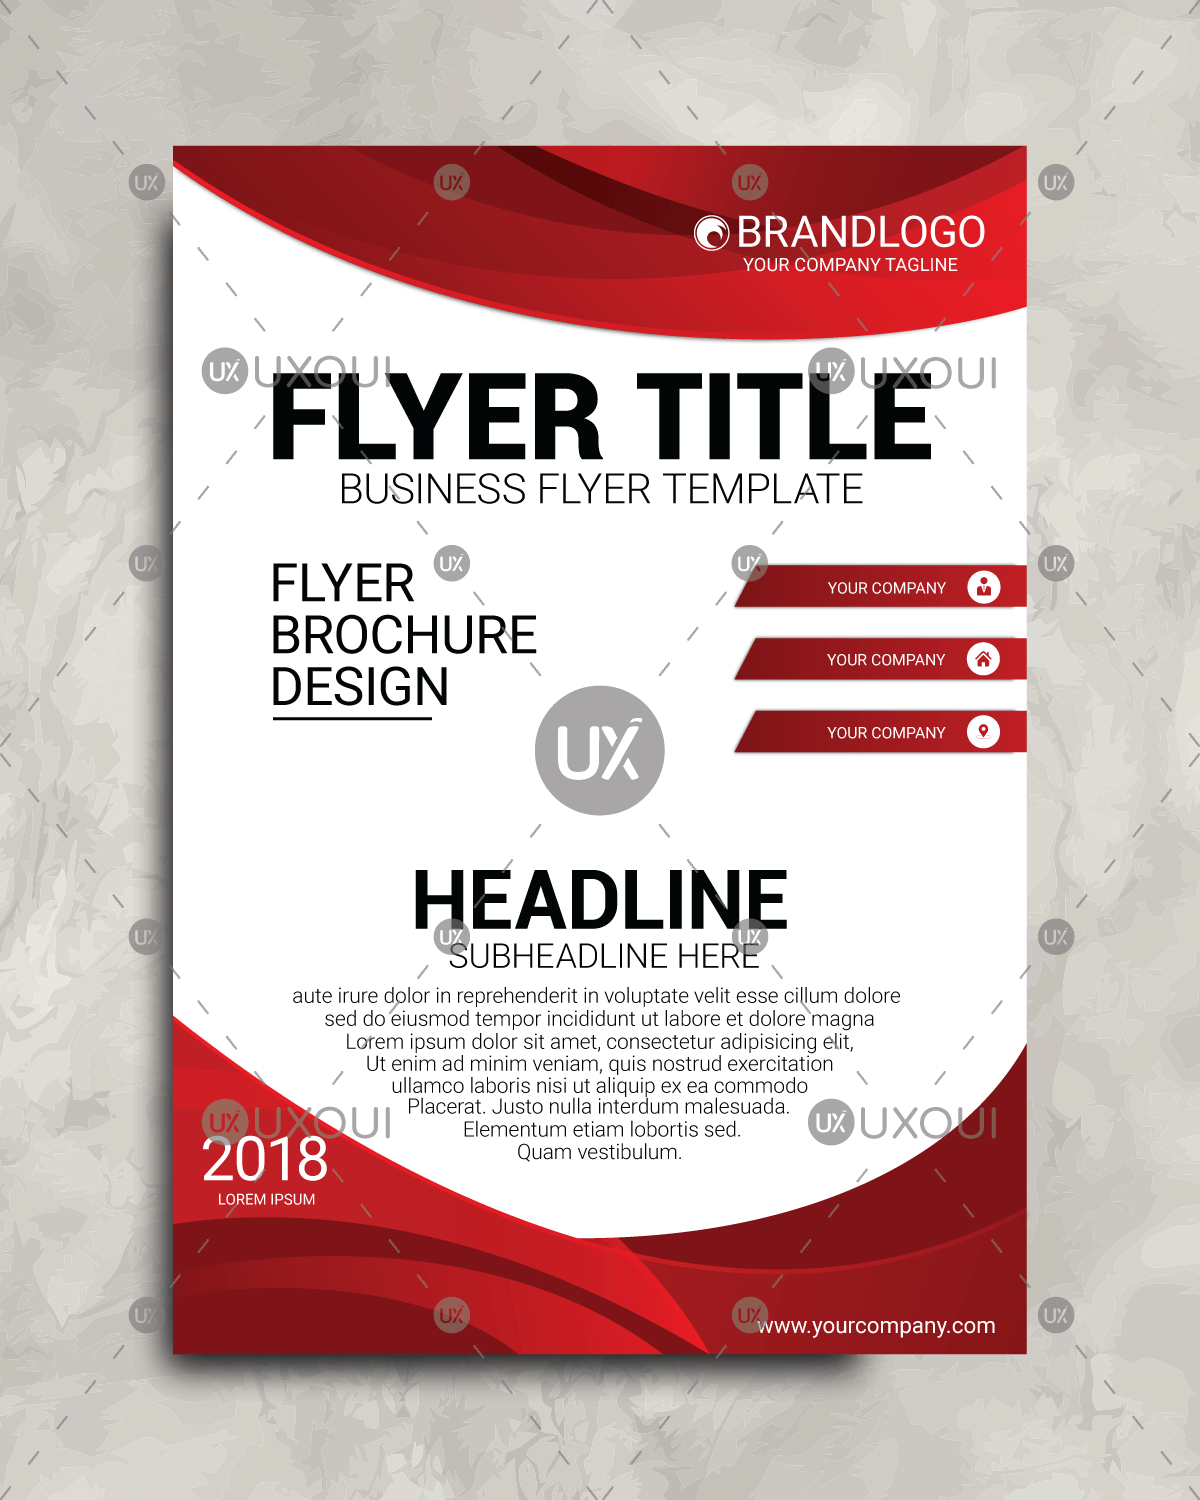 business flyer design with white red color in abstract background